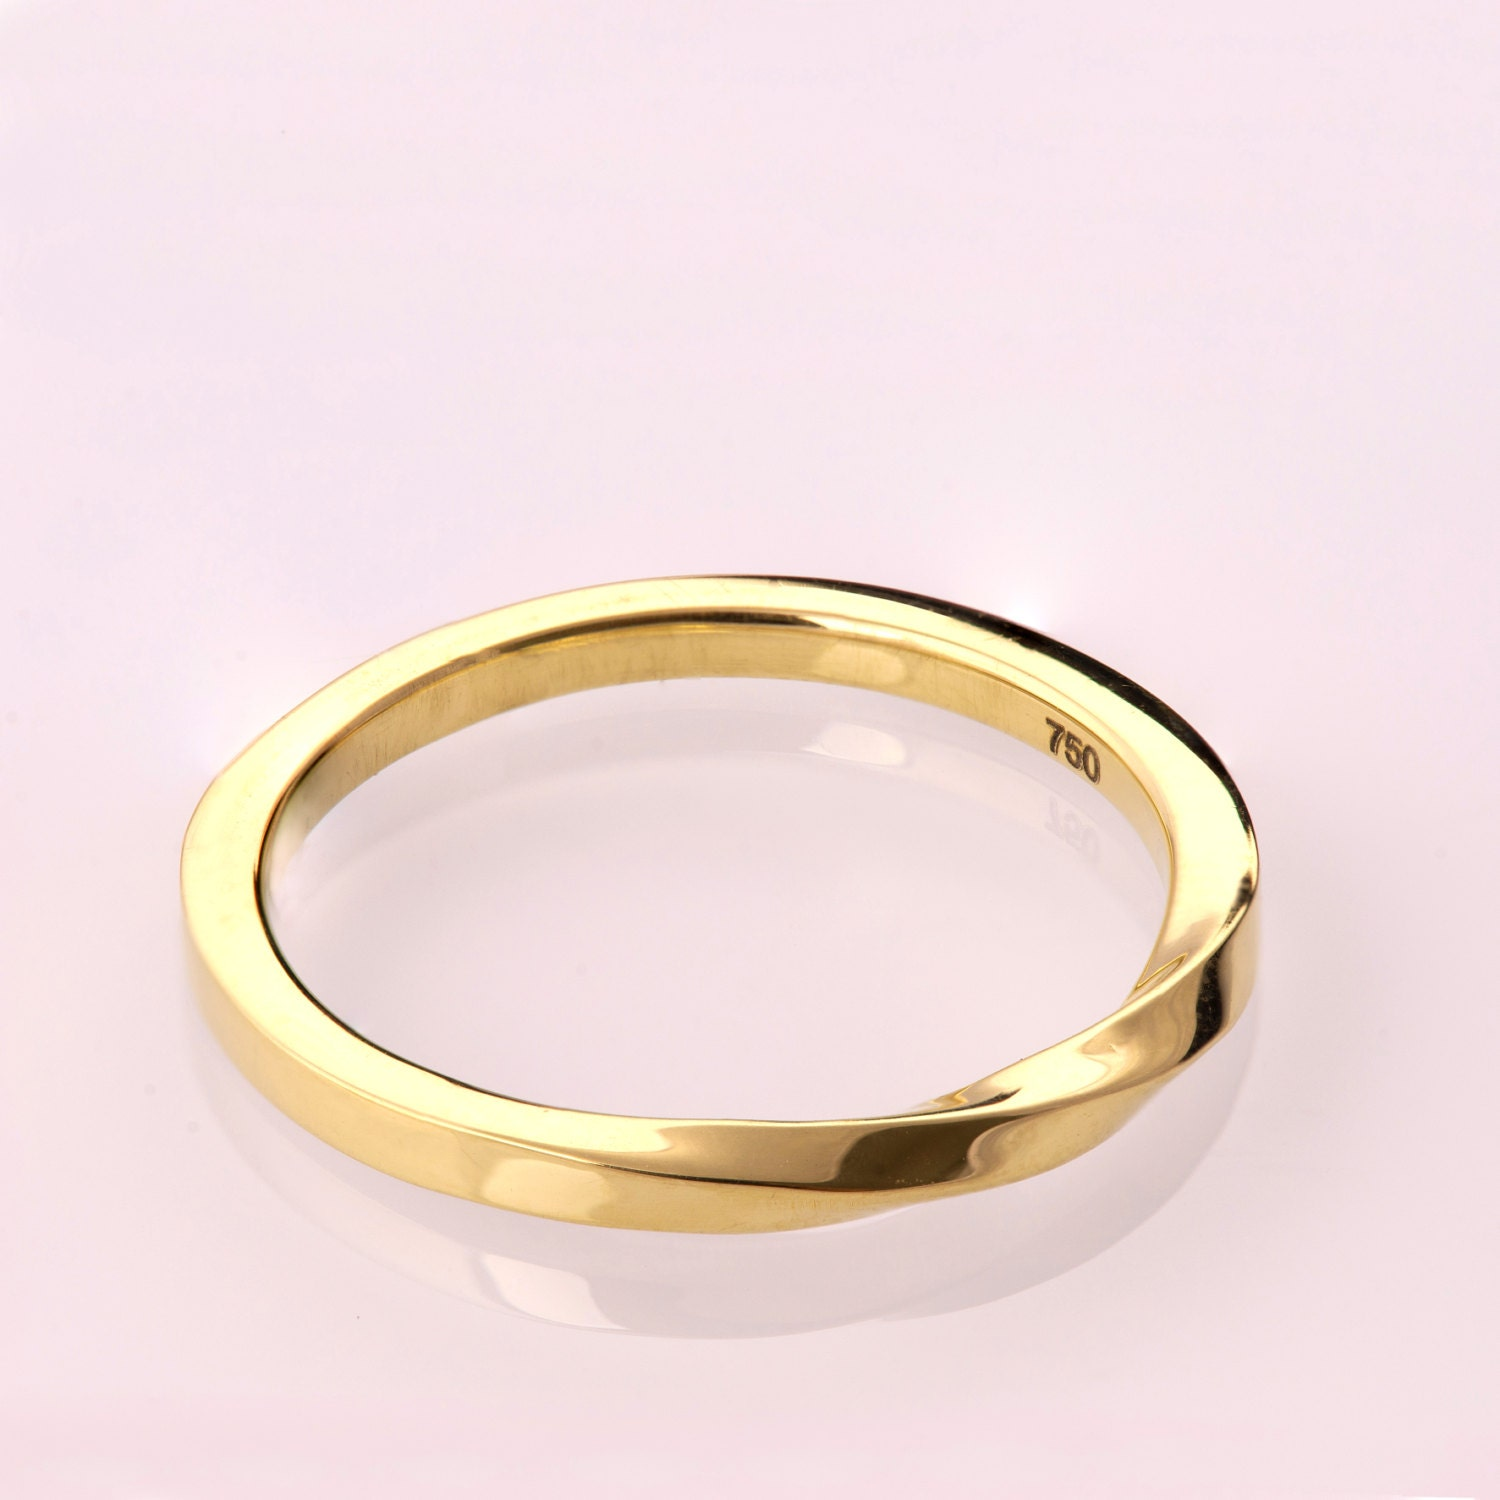 unique designs hozoni women s ring wedding gold band xxx of products organic rings thin womens